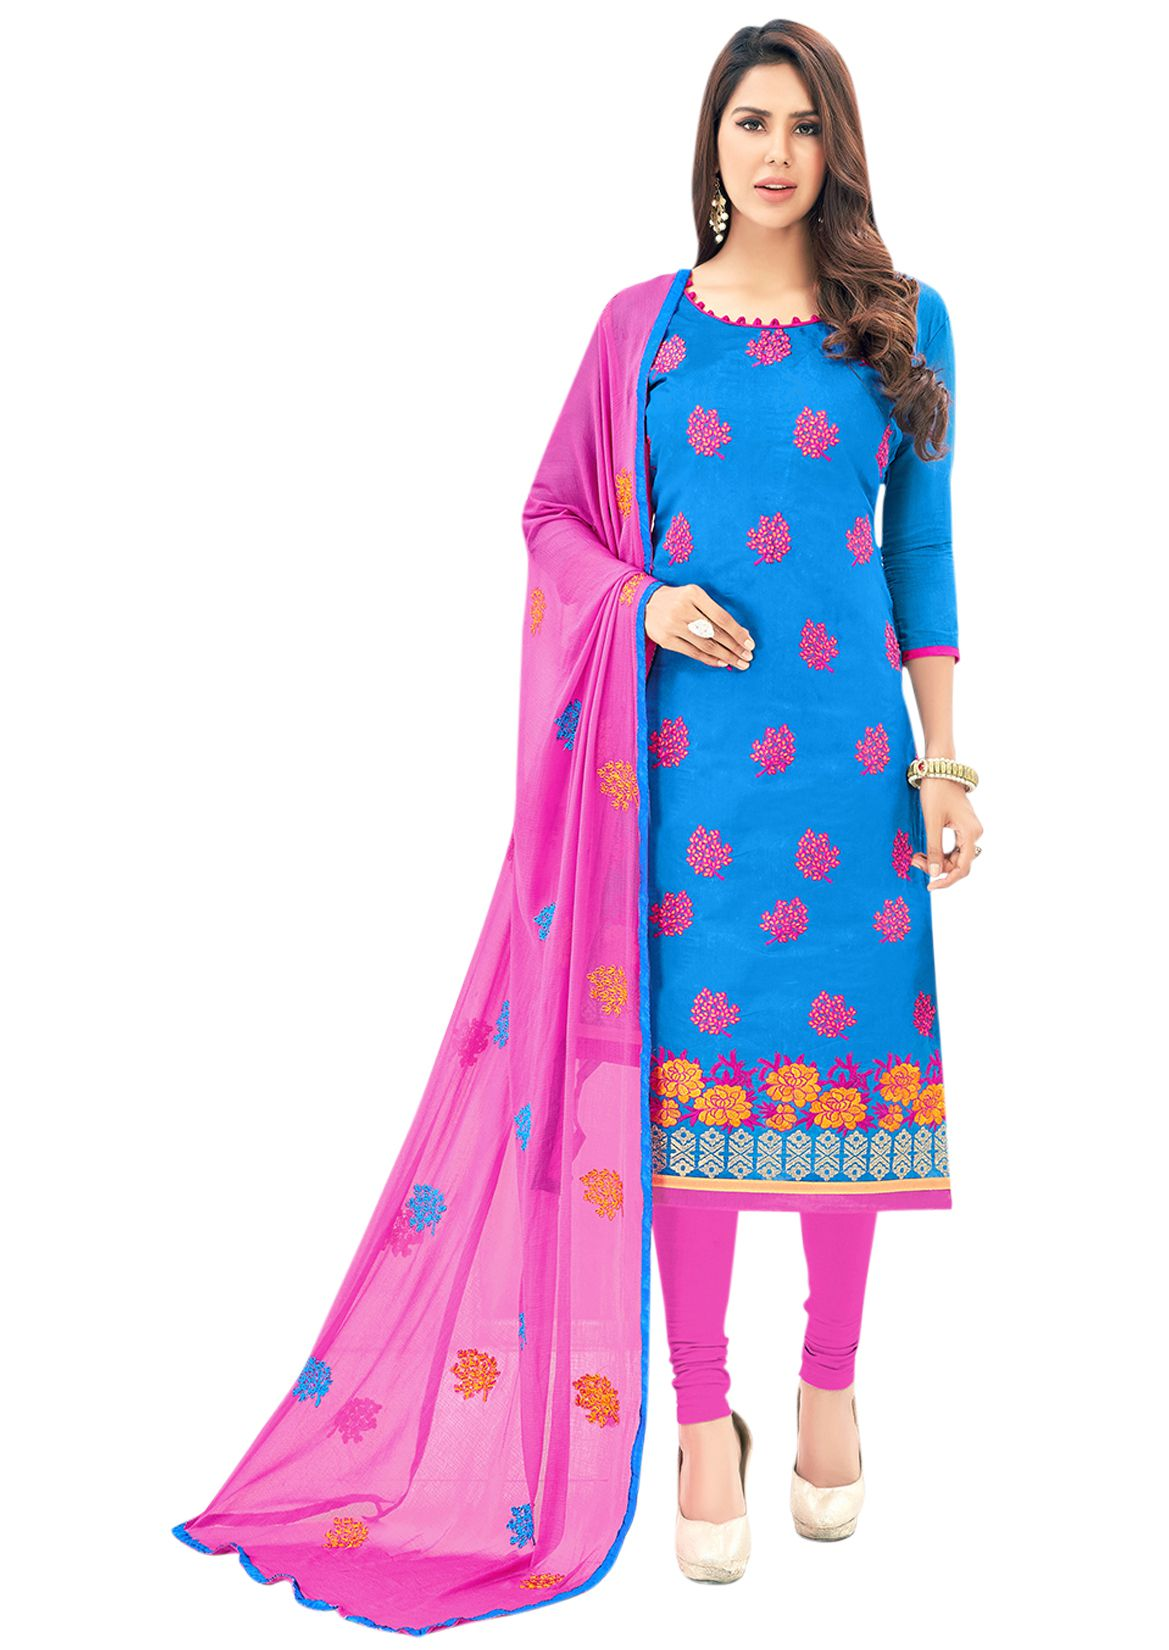 7fab98a5714 Blissta Pink and Blue Chanderi Dress Material - Buy Blissta Pink and Blue  Chanderi Dress Material Online at Best Prices in India on Snapdeal